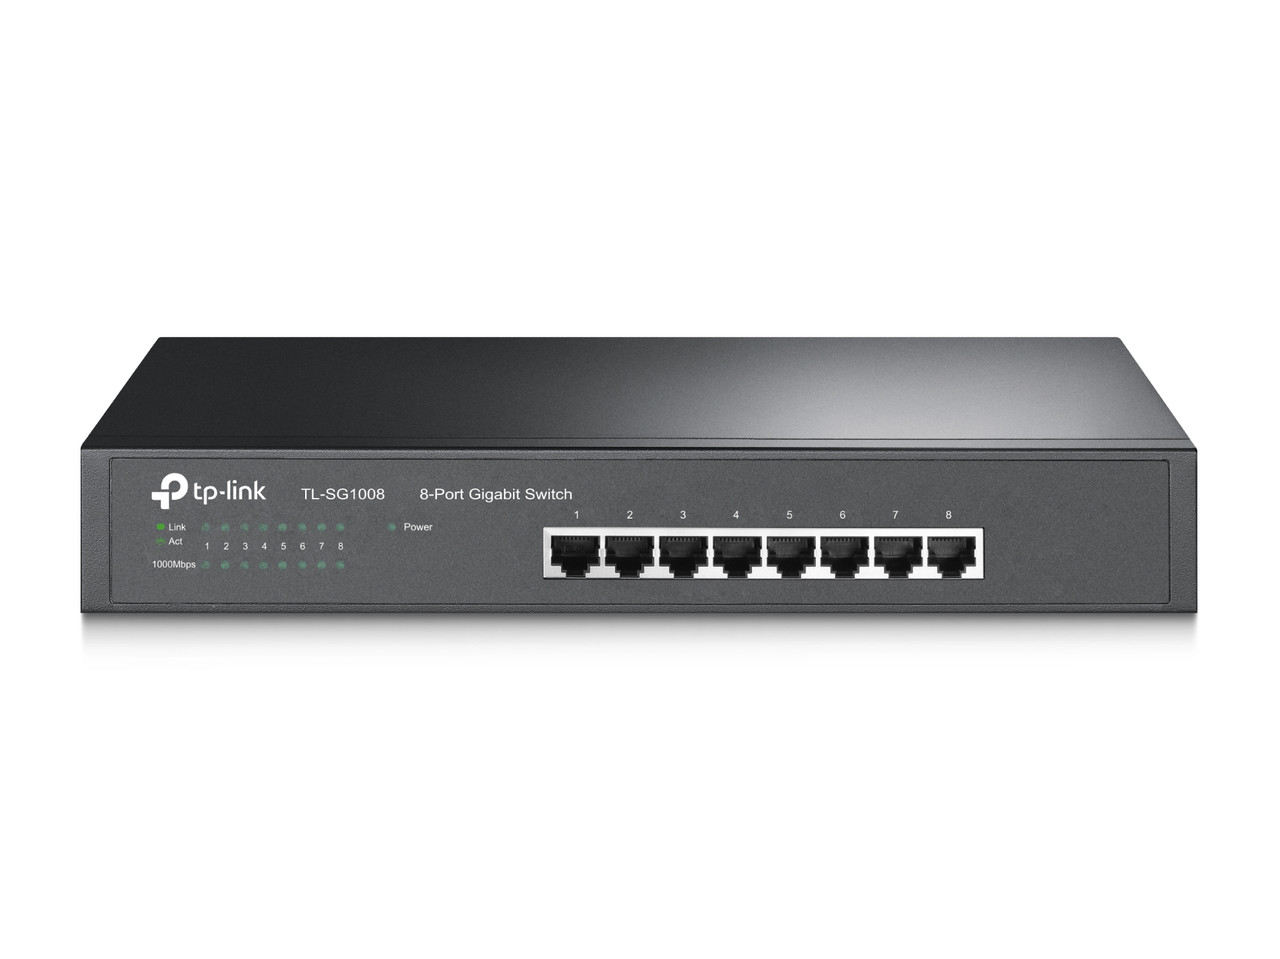 Коммутатор GbE 8-портовый Tp-Link TL-SG1008 8-port Gigabit Switch, 1U